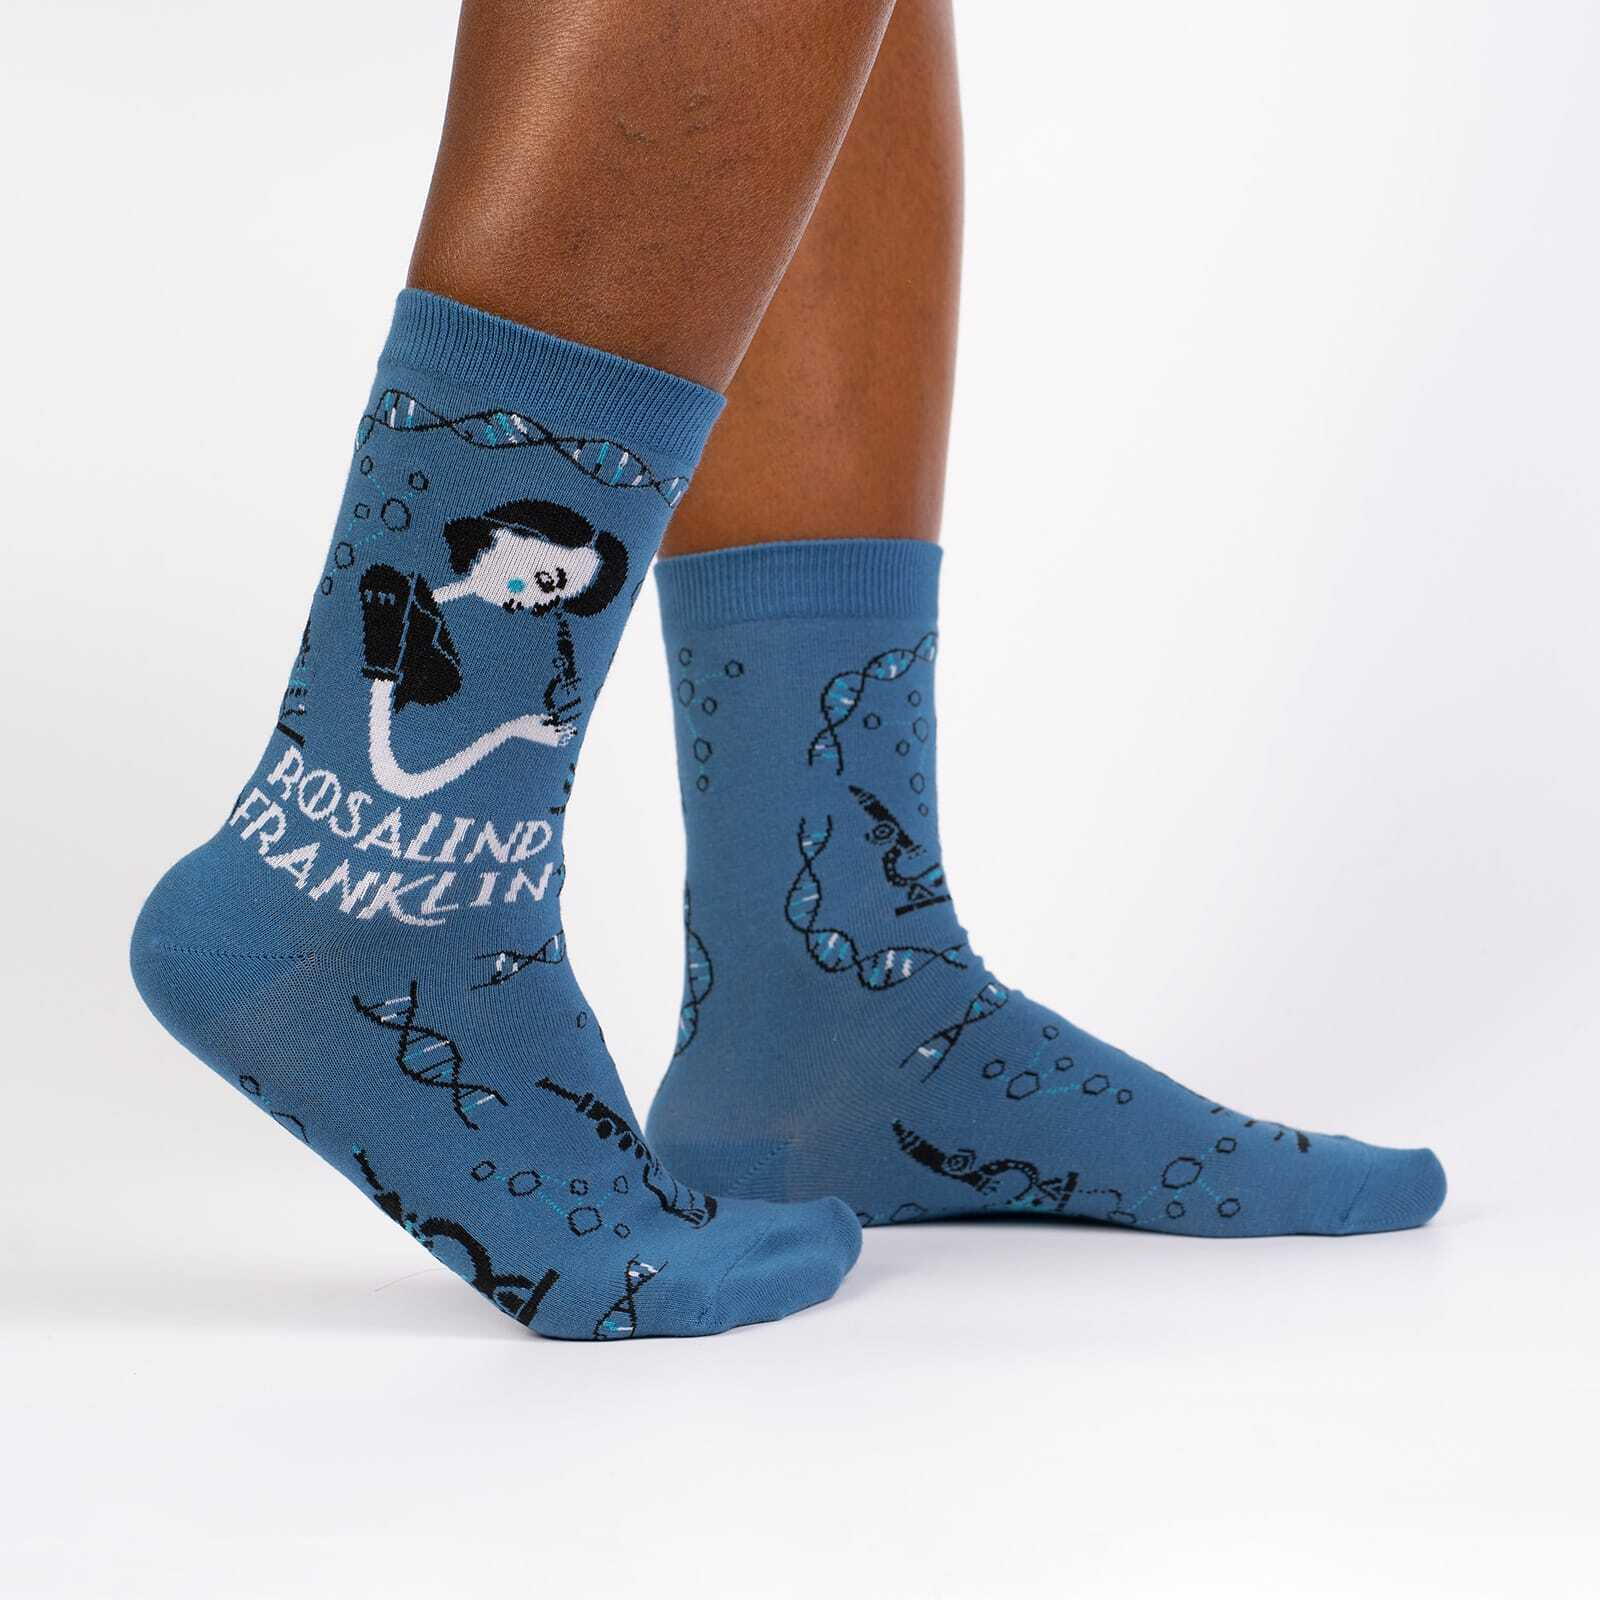 Rosalind Franklin - Famous Science Feminist Icons Crew Socks Blue - Women's in Blue